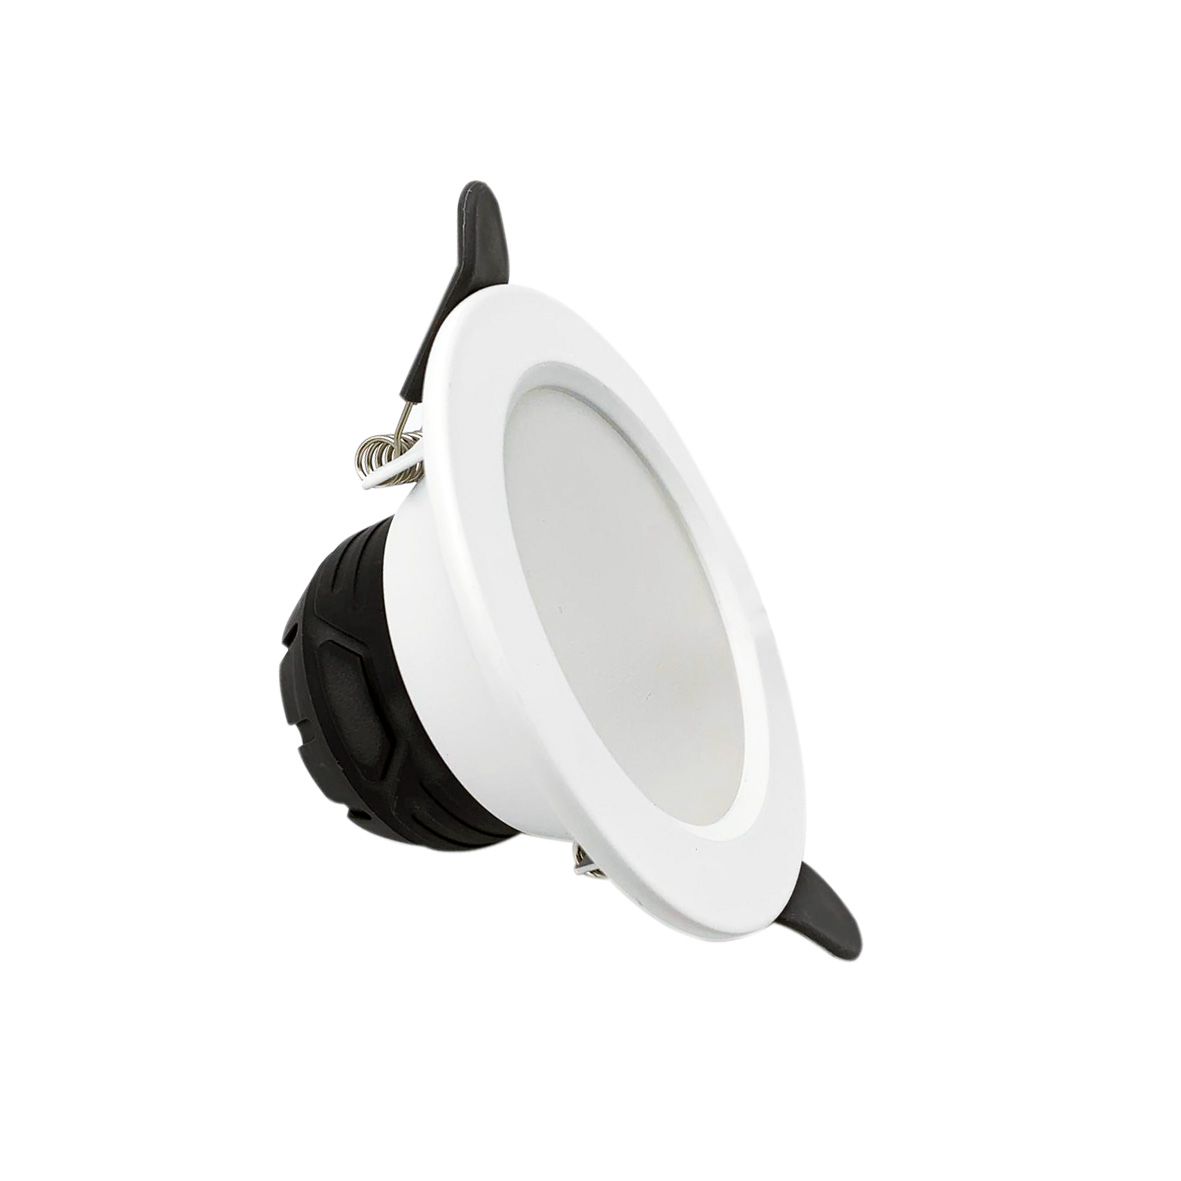 LED spotlight 6W recessed diameter 100mm F. I. 75-95 mm tonalita' light variable